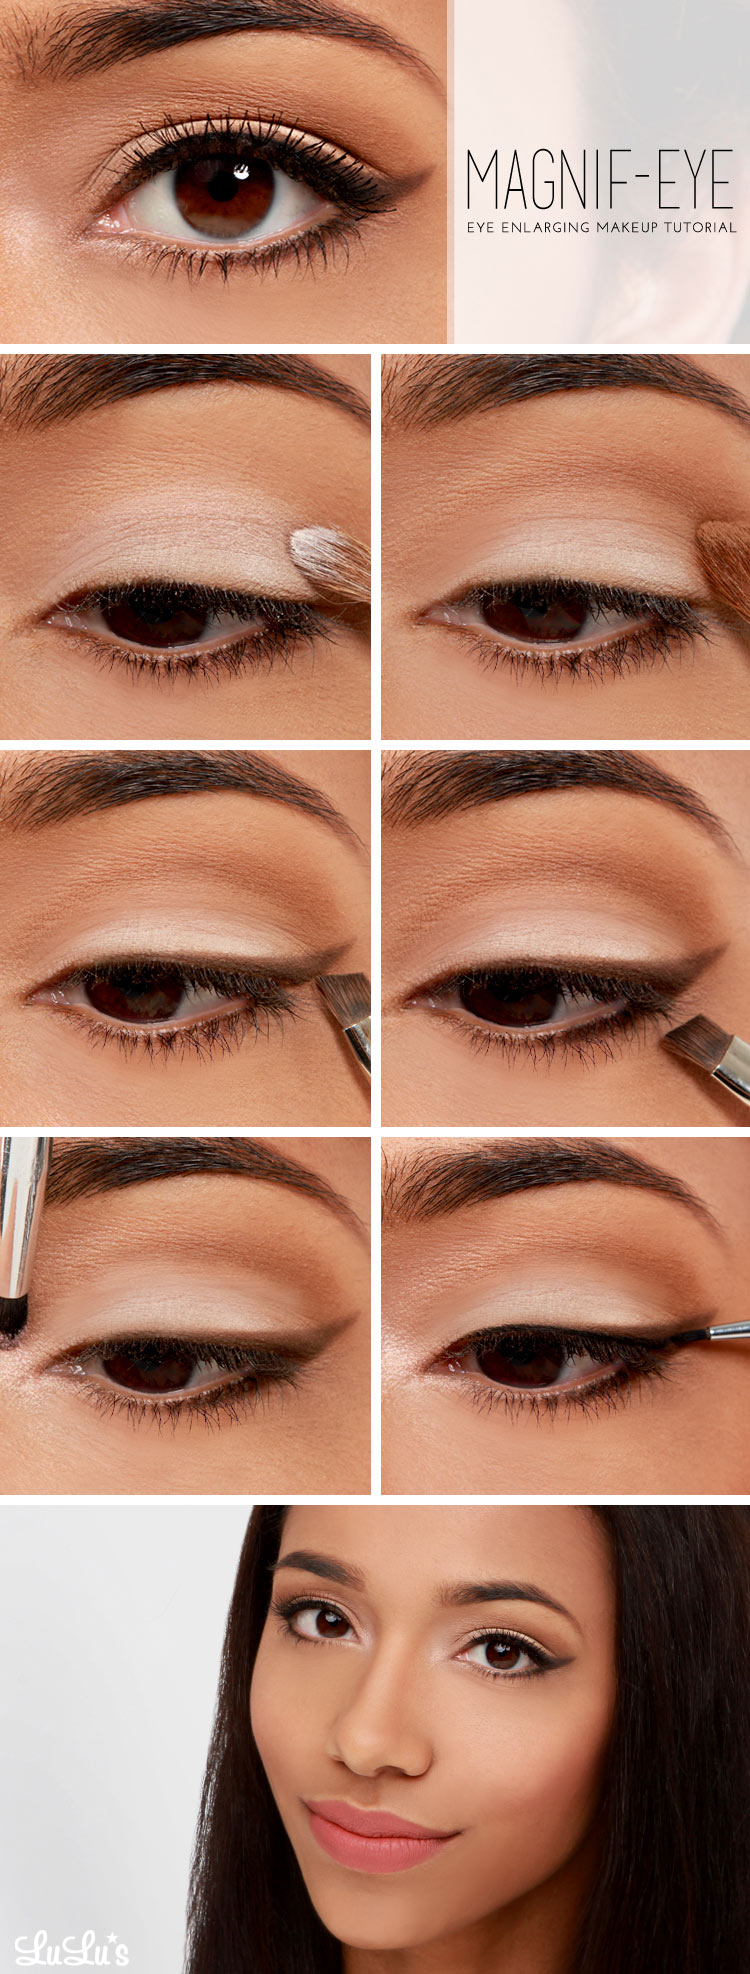 Lulus How-To: Eye Enlarging Makeup Tutorial